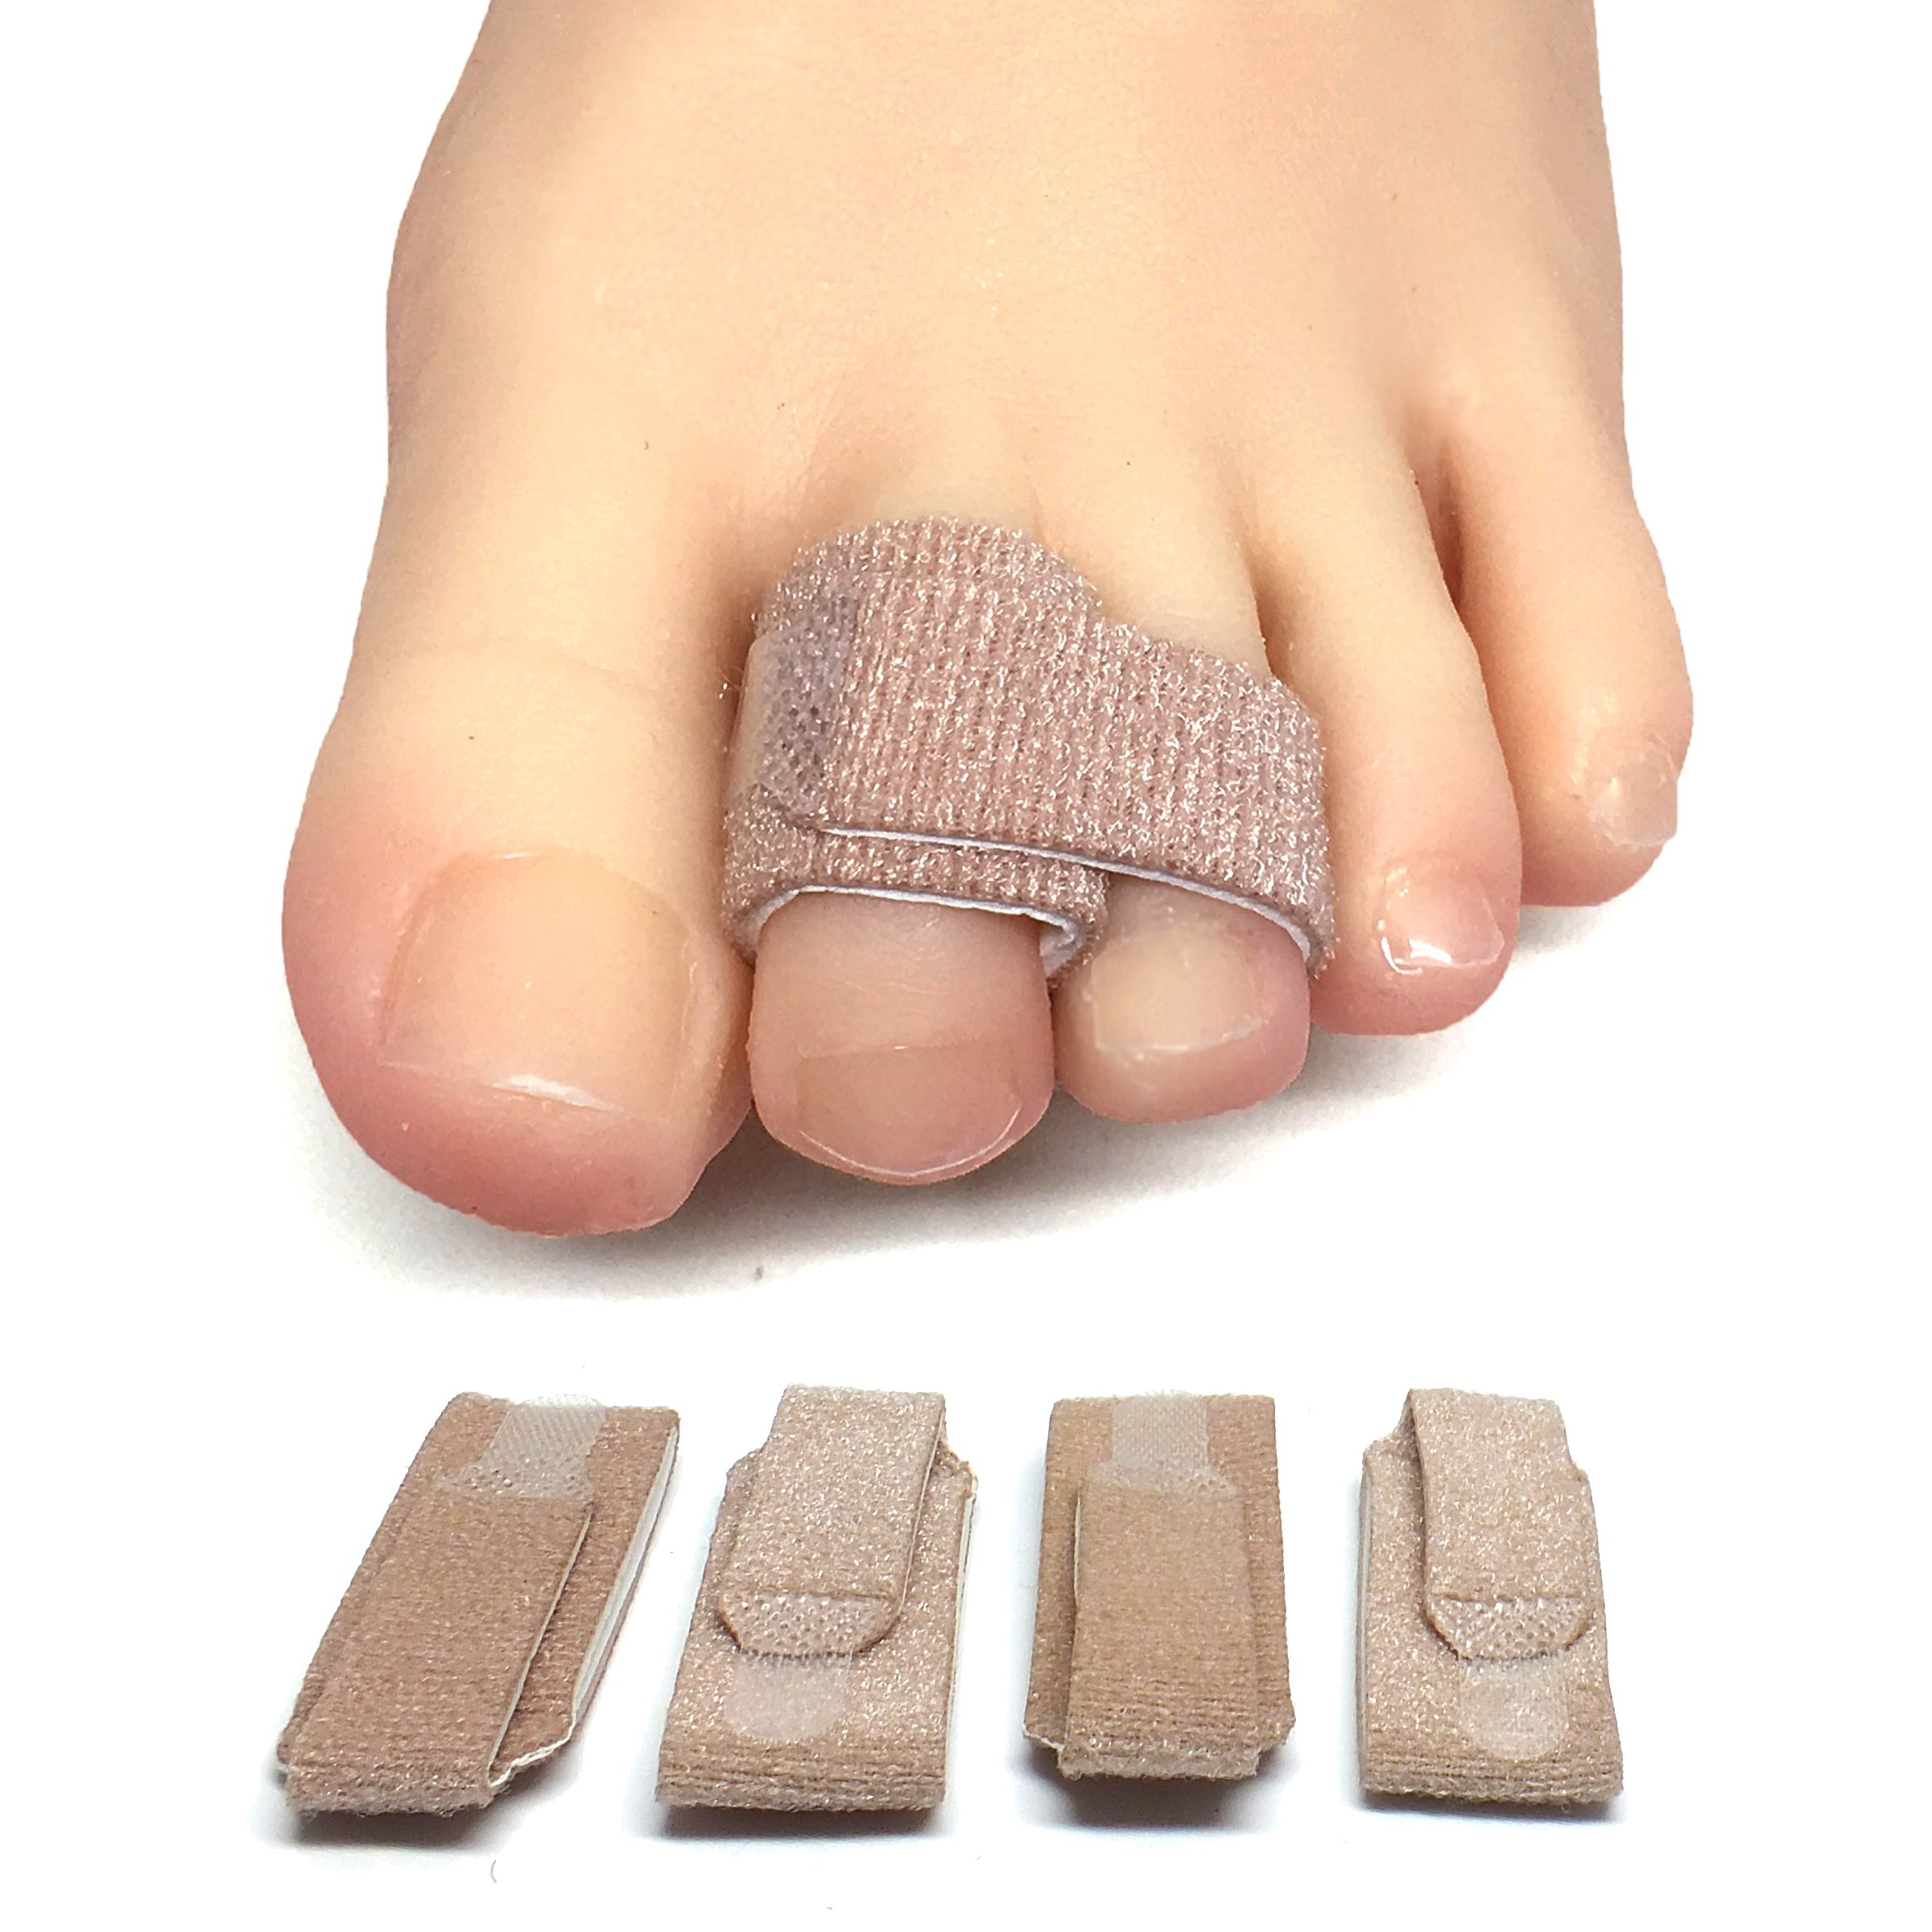 How to Bandage Fingers or Toes